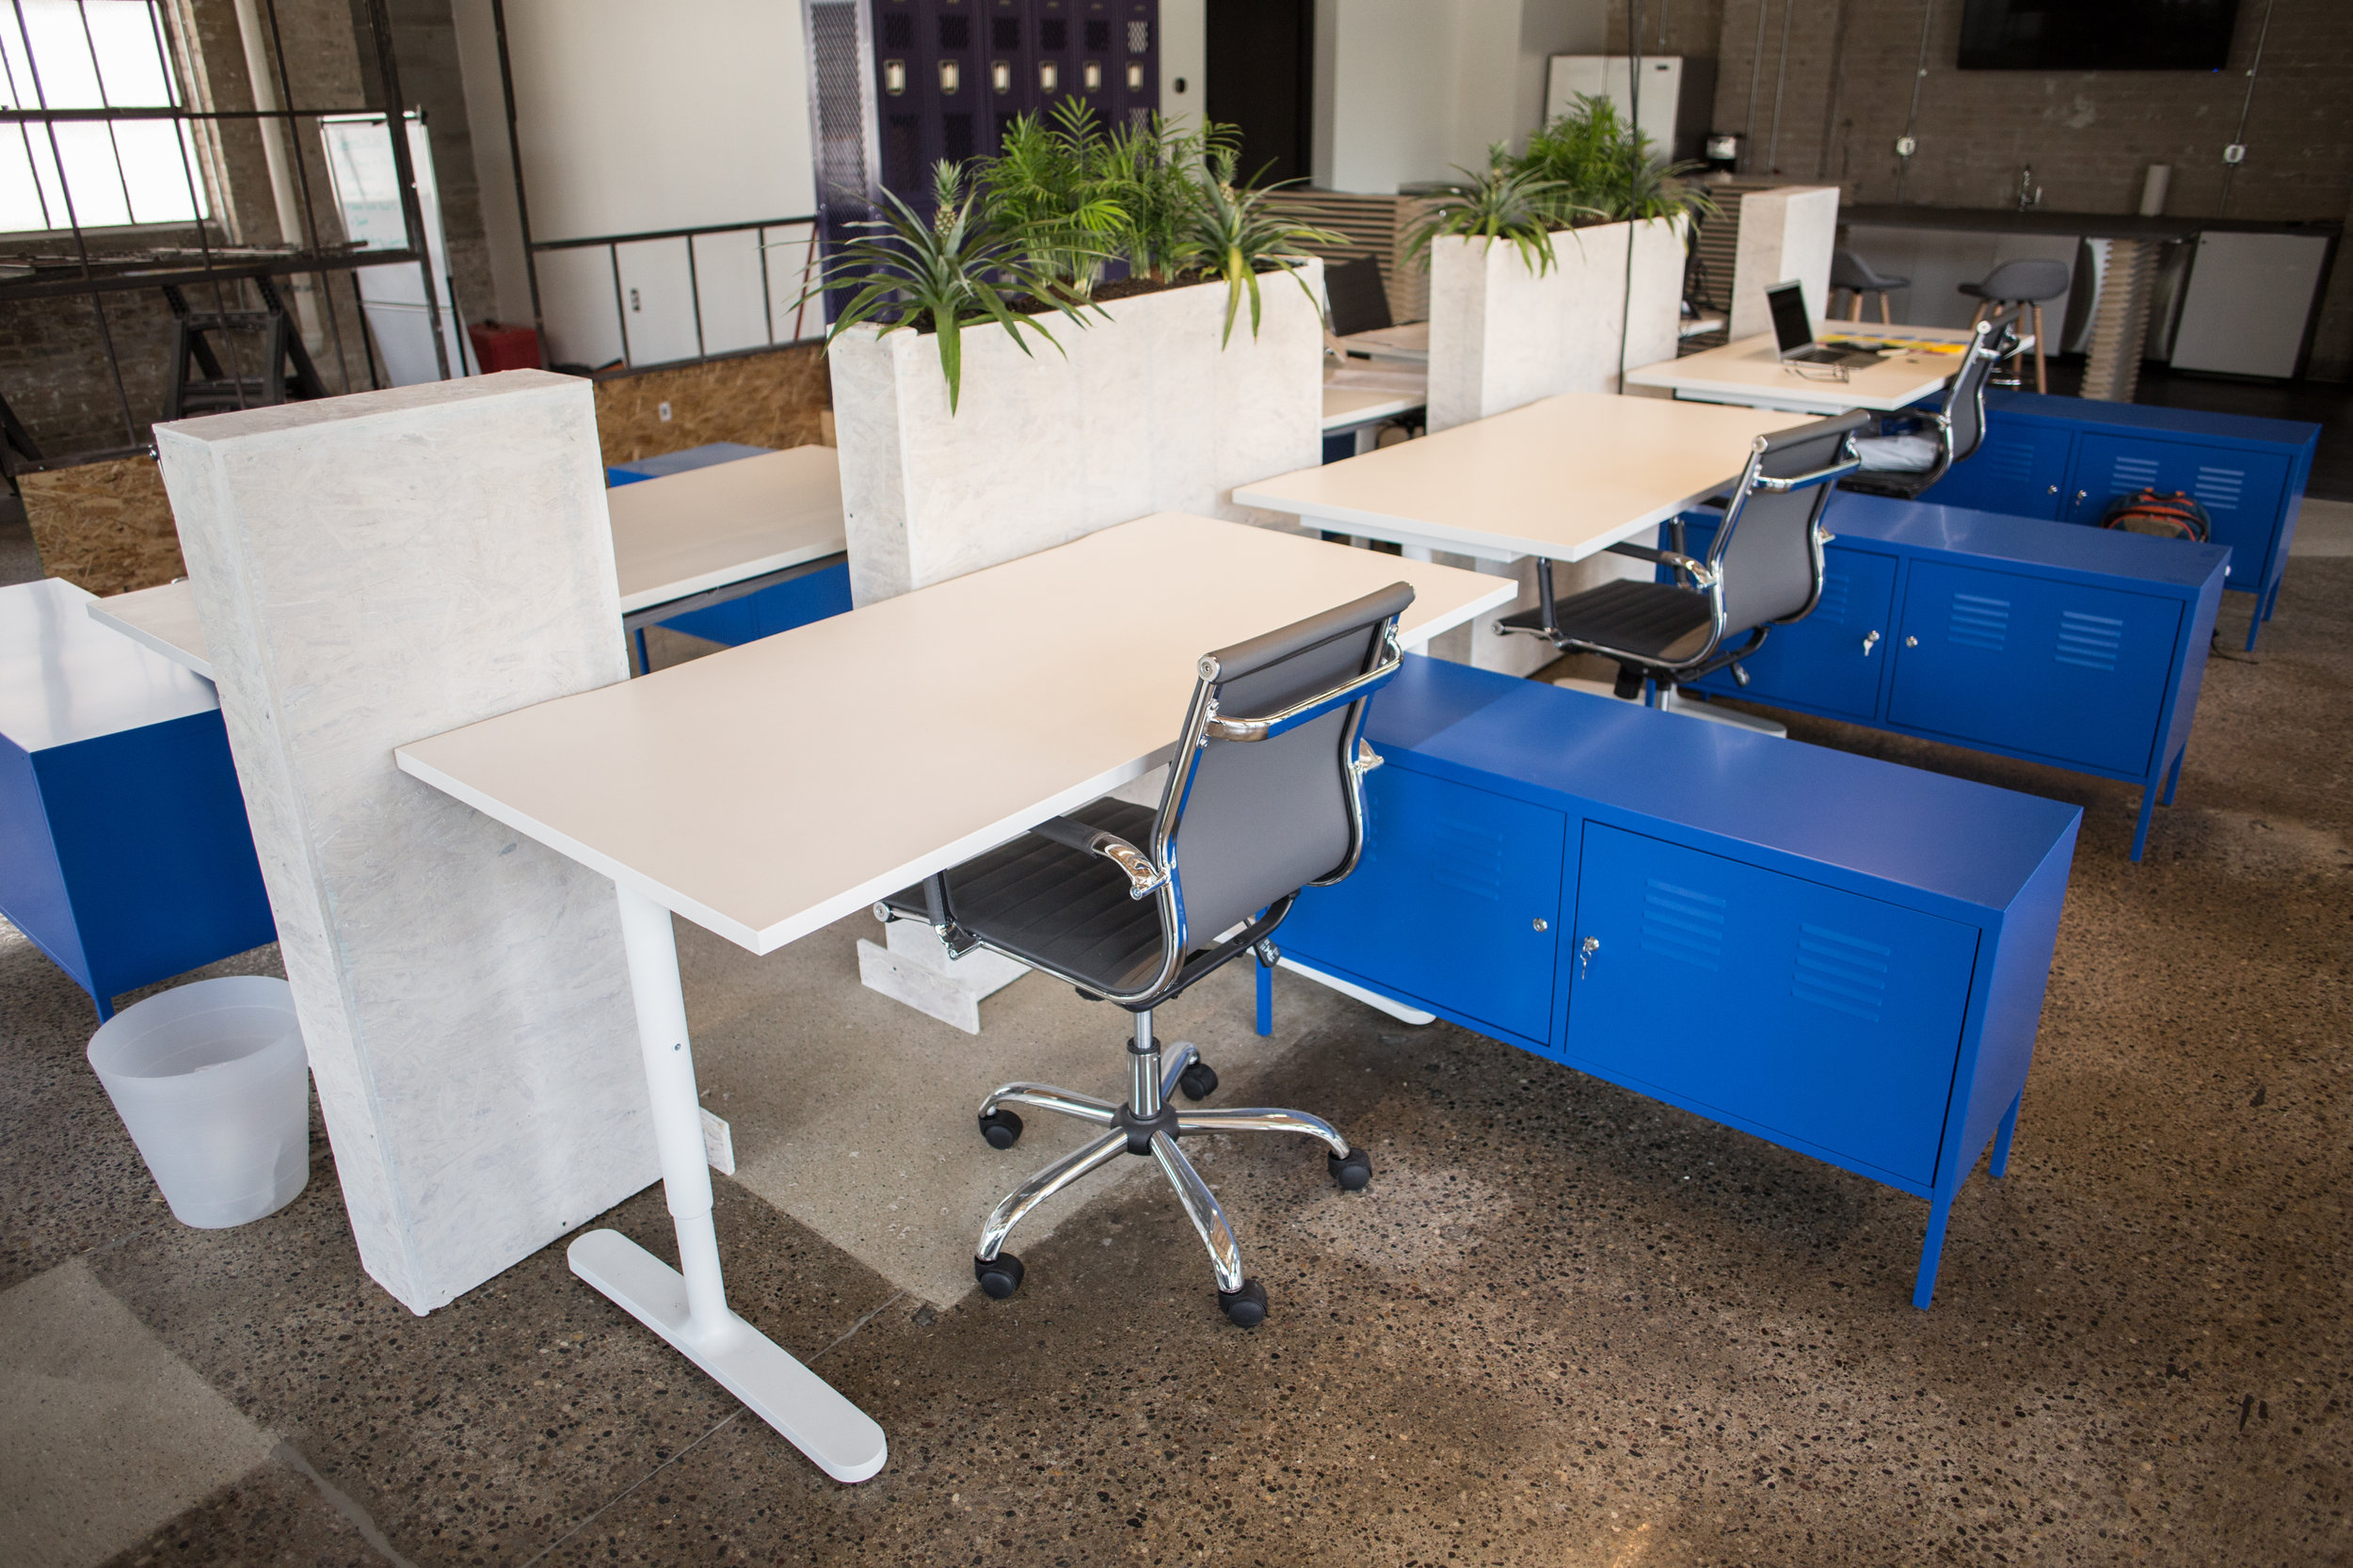 DEDICATED WORK STATION -  $495/mo   This space is yours. You get a permanent desk, lockable storage cabinet, and personal locker. Fly your brand, store your stuff and make yourself at home. You get all the amenities of Blueprint Collaborative, priority event scheduling, and 24/7 access.